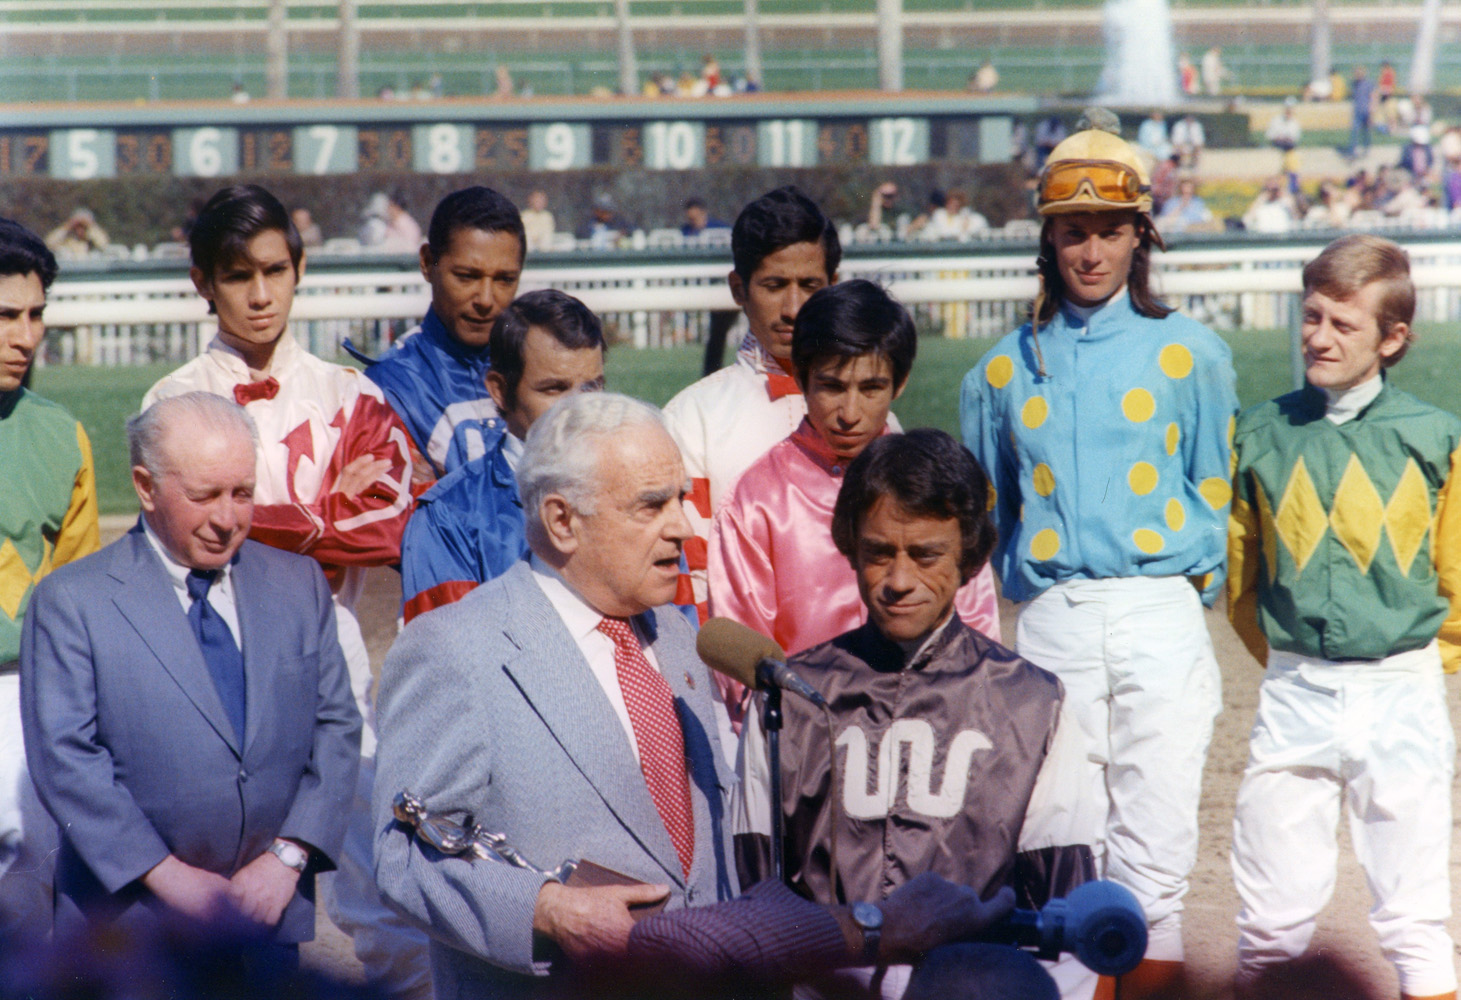 John Rotz receiving the 1973 George Woolf Memorial Award at Santa Anita (Bill Mochon/Museum Collection)